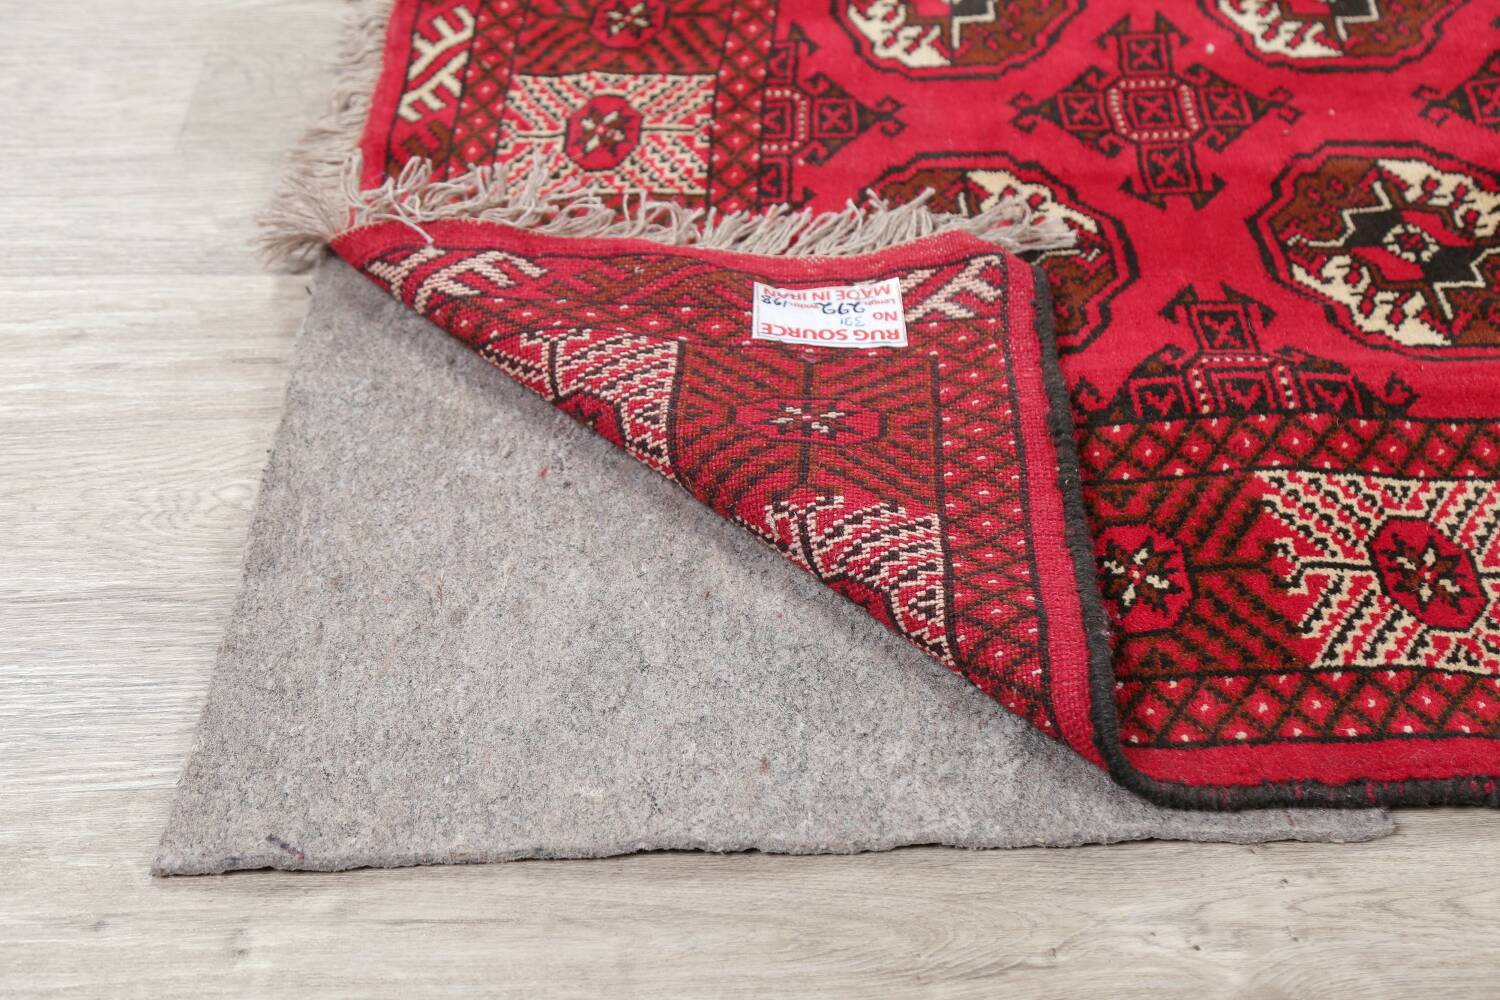 All-Over Geometric Red Balouch Persian Area Rug 6x10 image 6